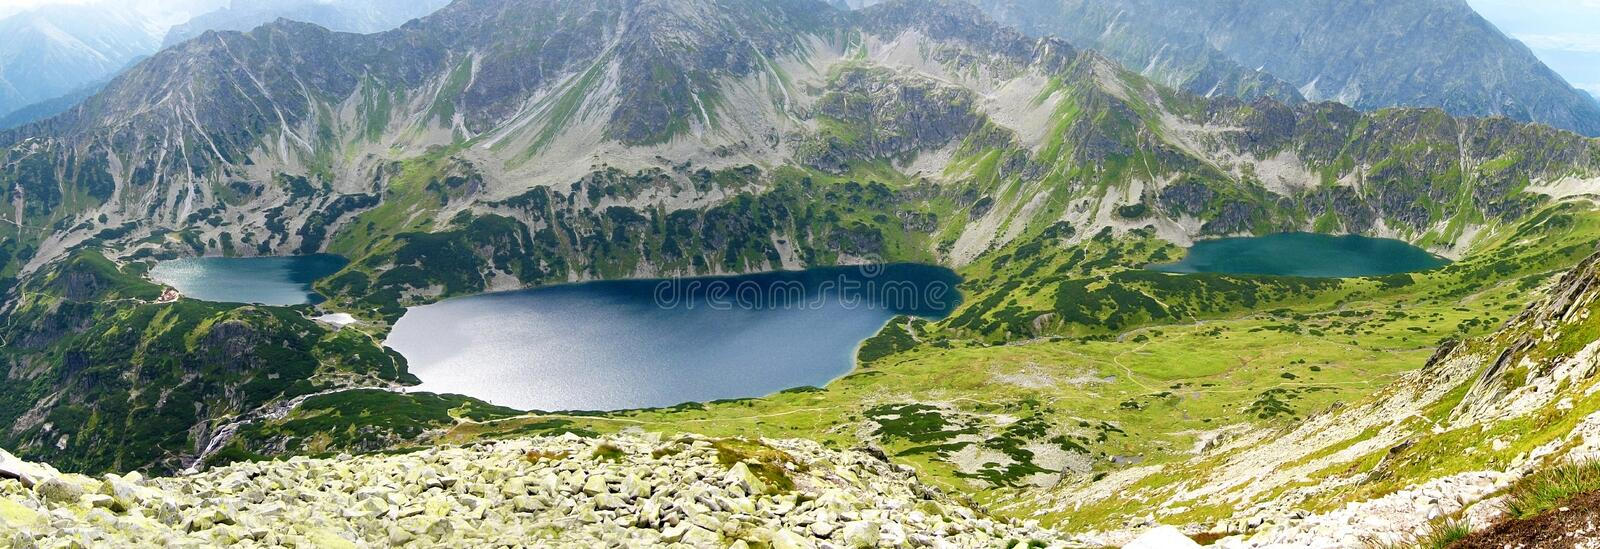 Tatra mountains in Poland, green hill, lake and rocky peak in the sunny day with clear blue sky. Tatra mountains in Poland, The valley of five Polish lakes royalty free stock photos